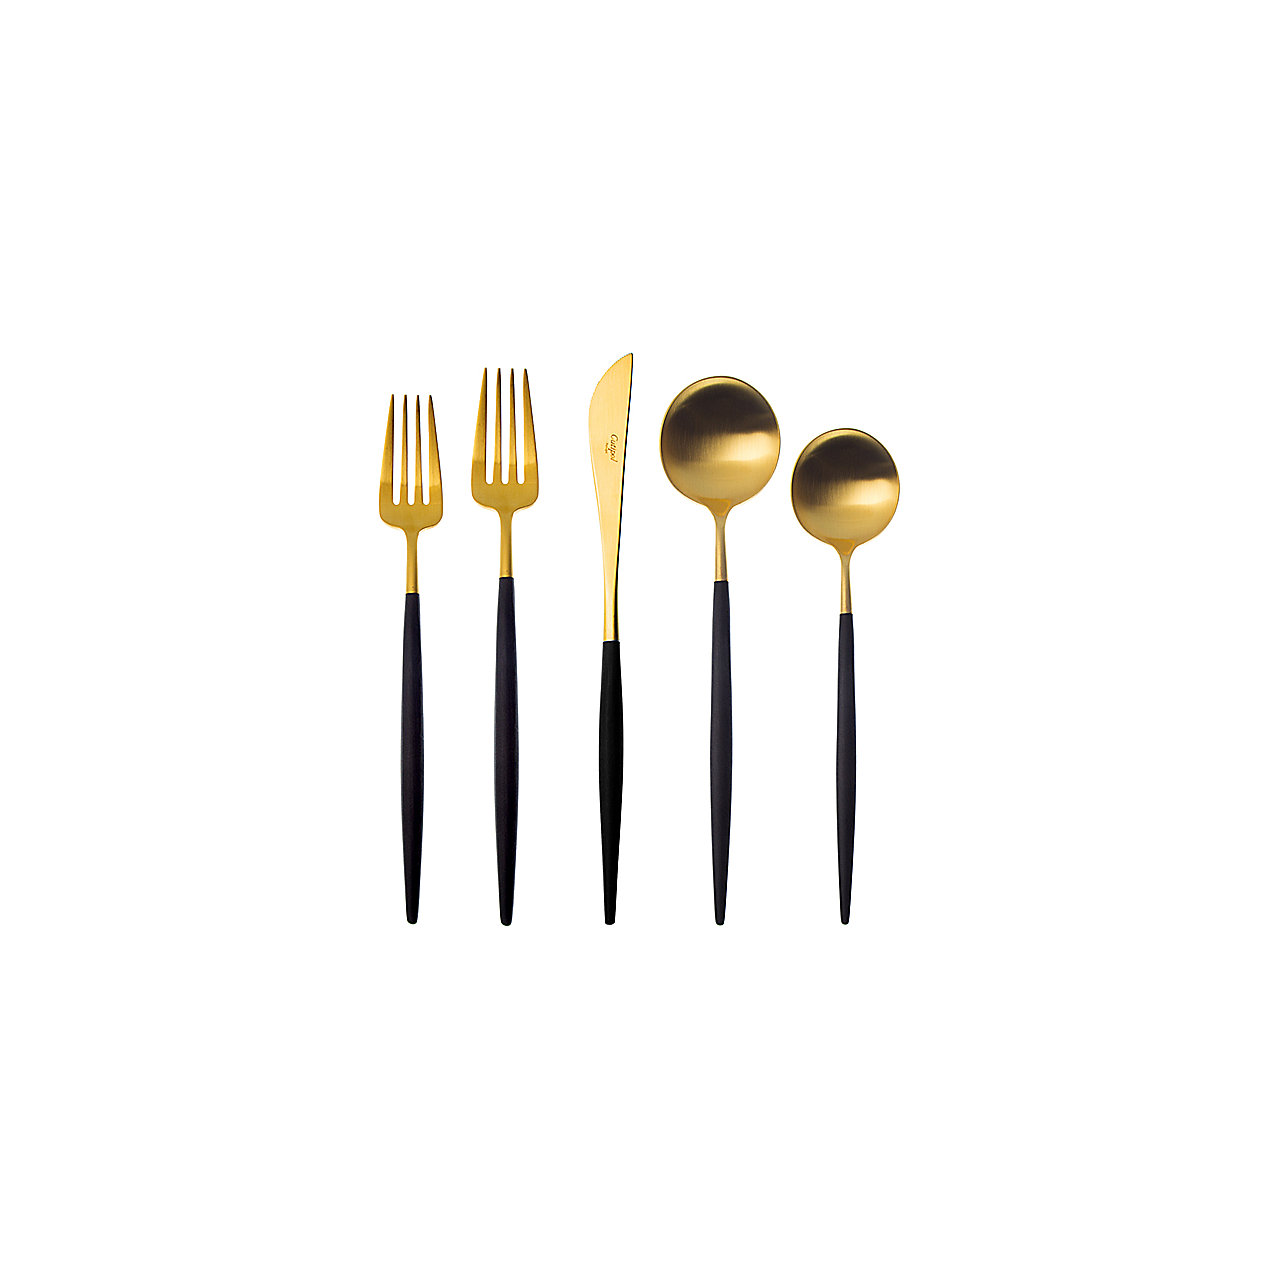 Cutipol Goa Blue and Gold 5 Piece Place Setting